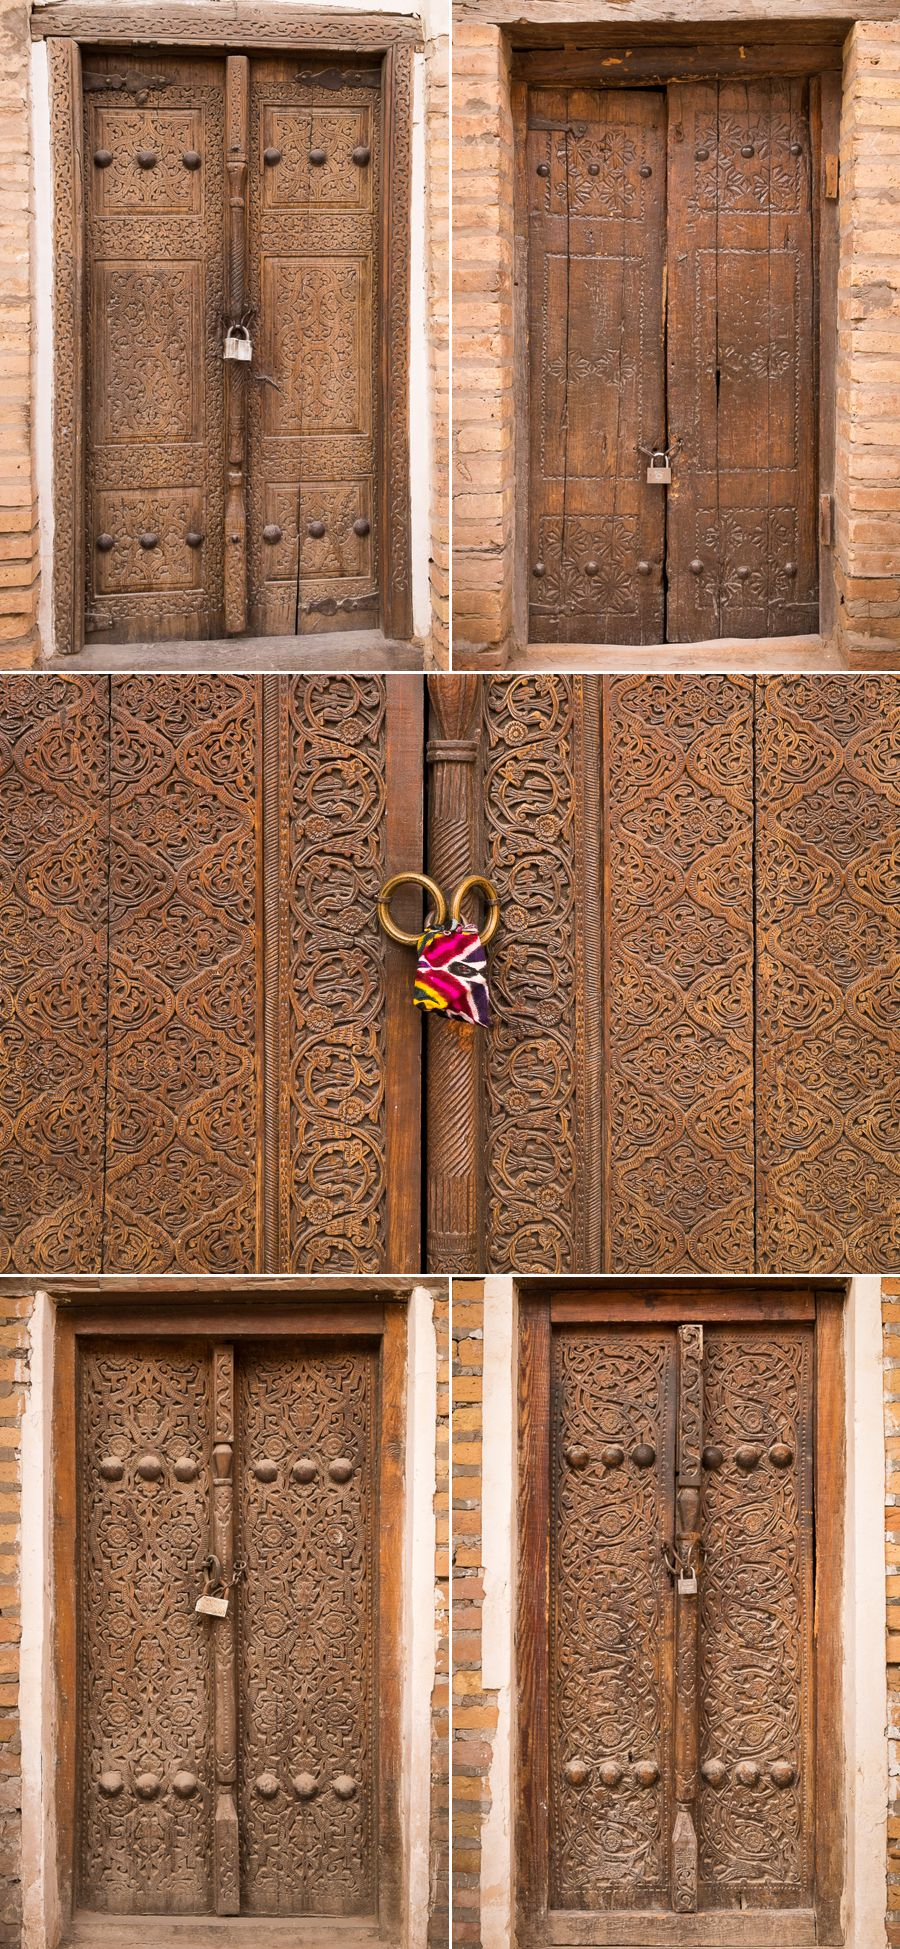 Highly decorated doors - Khiva - Uzbekistan